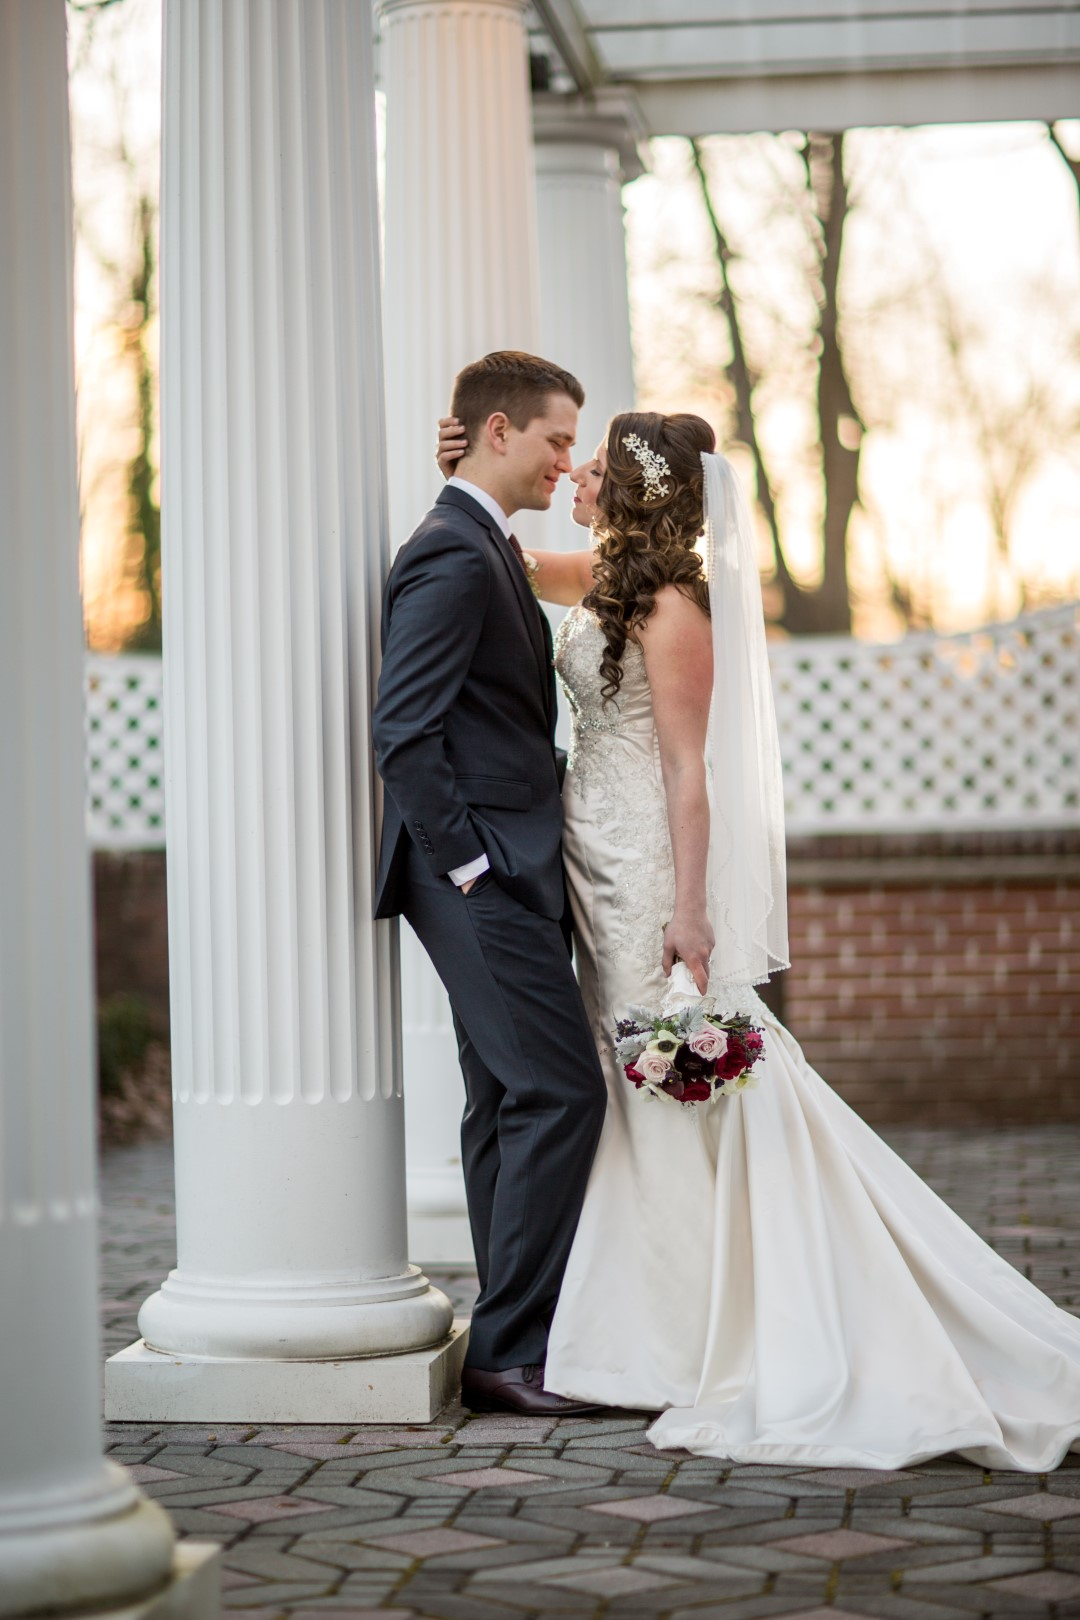 The Ultimate Creative Bride And Groom Pose Guide